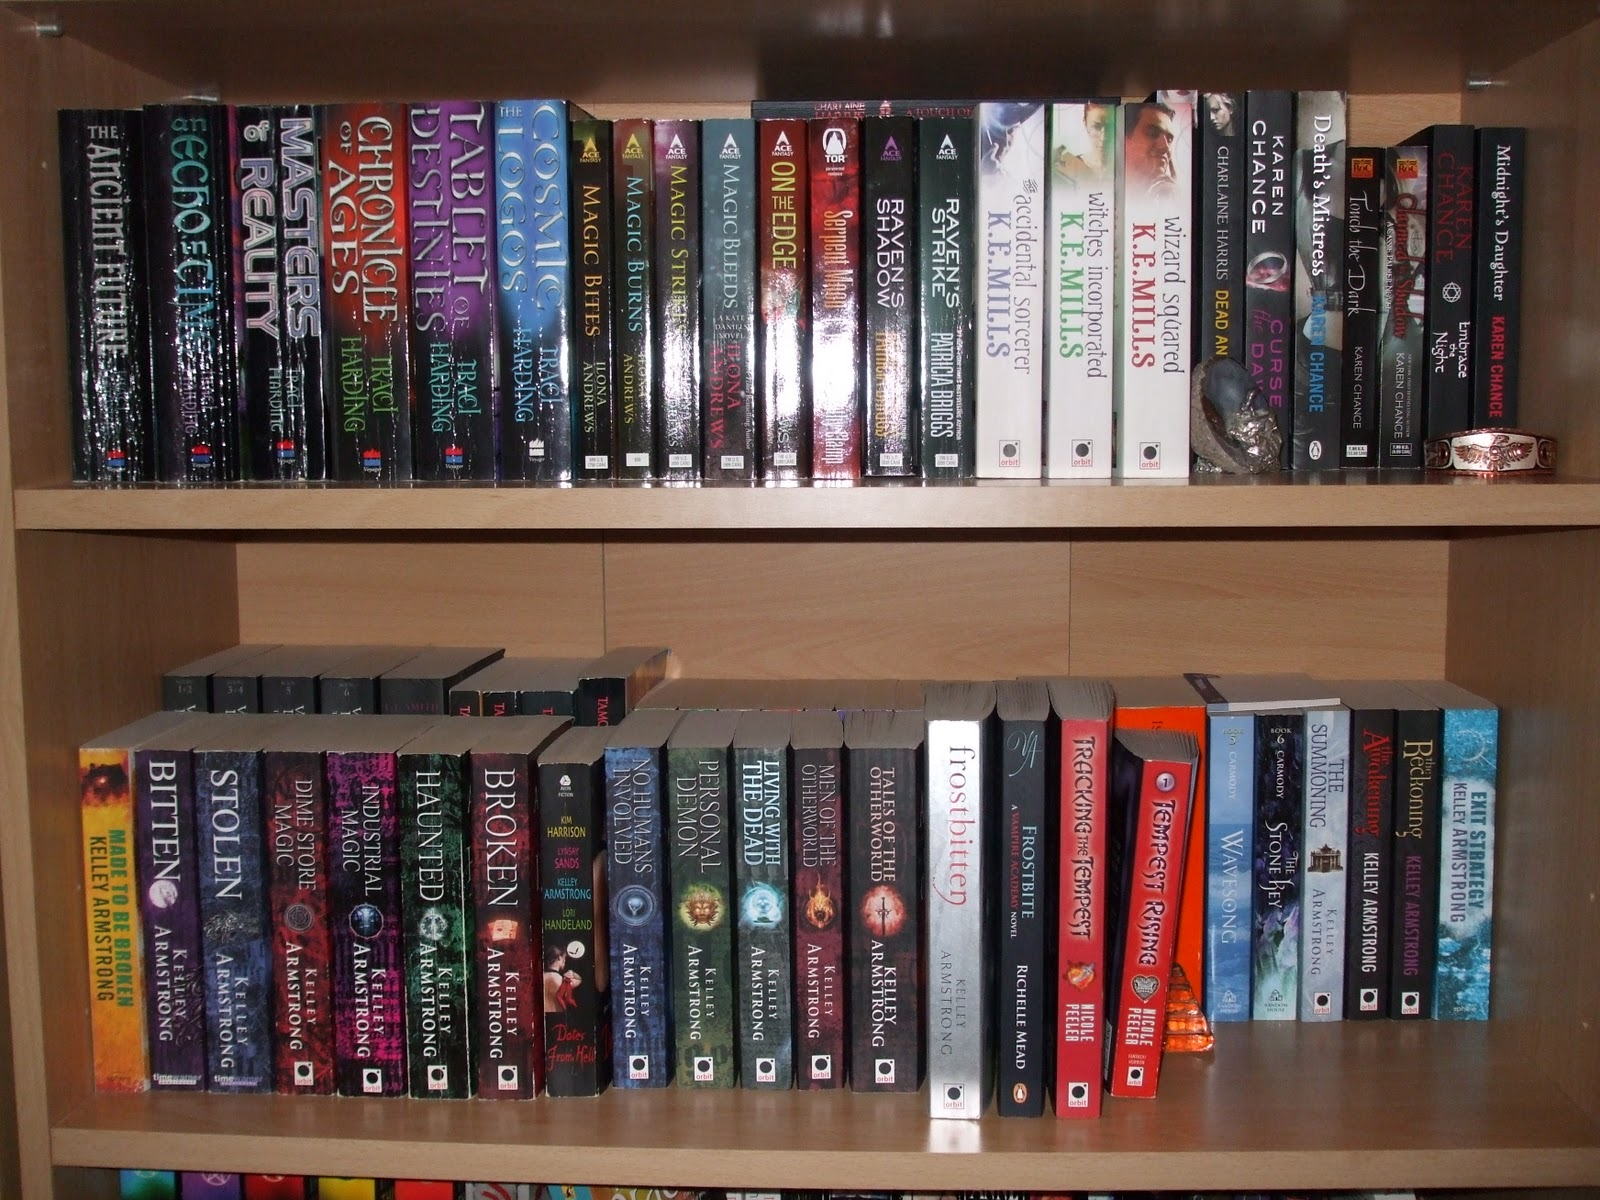 The Fantasy Theme Continues With Traci Harding, Who Is An Australian Author  Very Difficult To Get Hold Off In The Northern Hemisphere